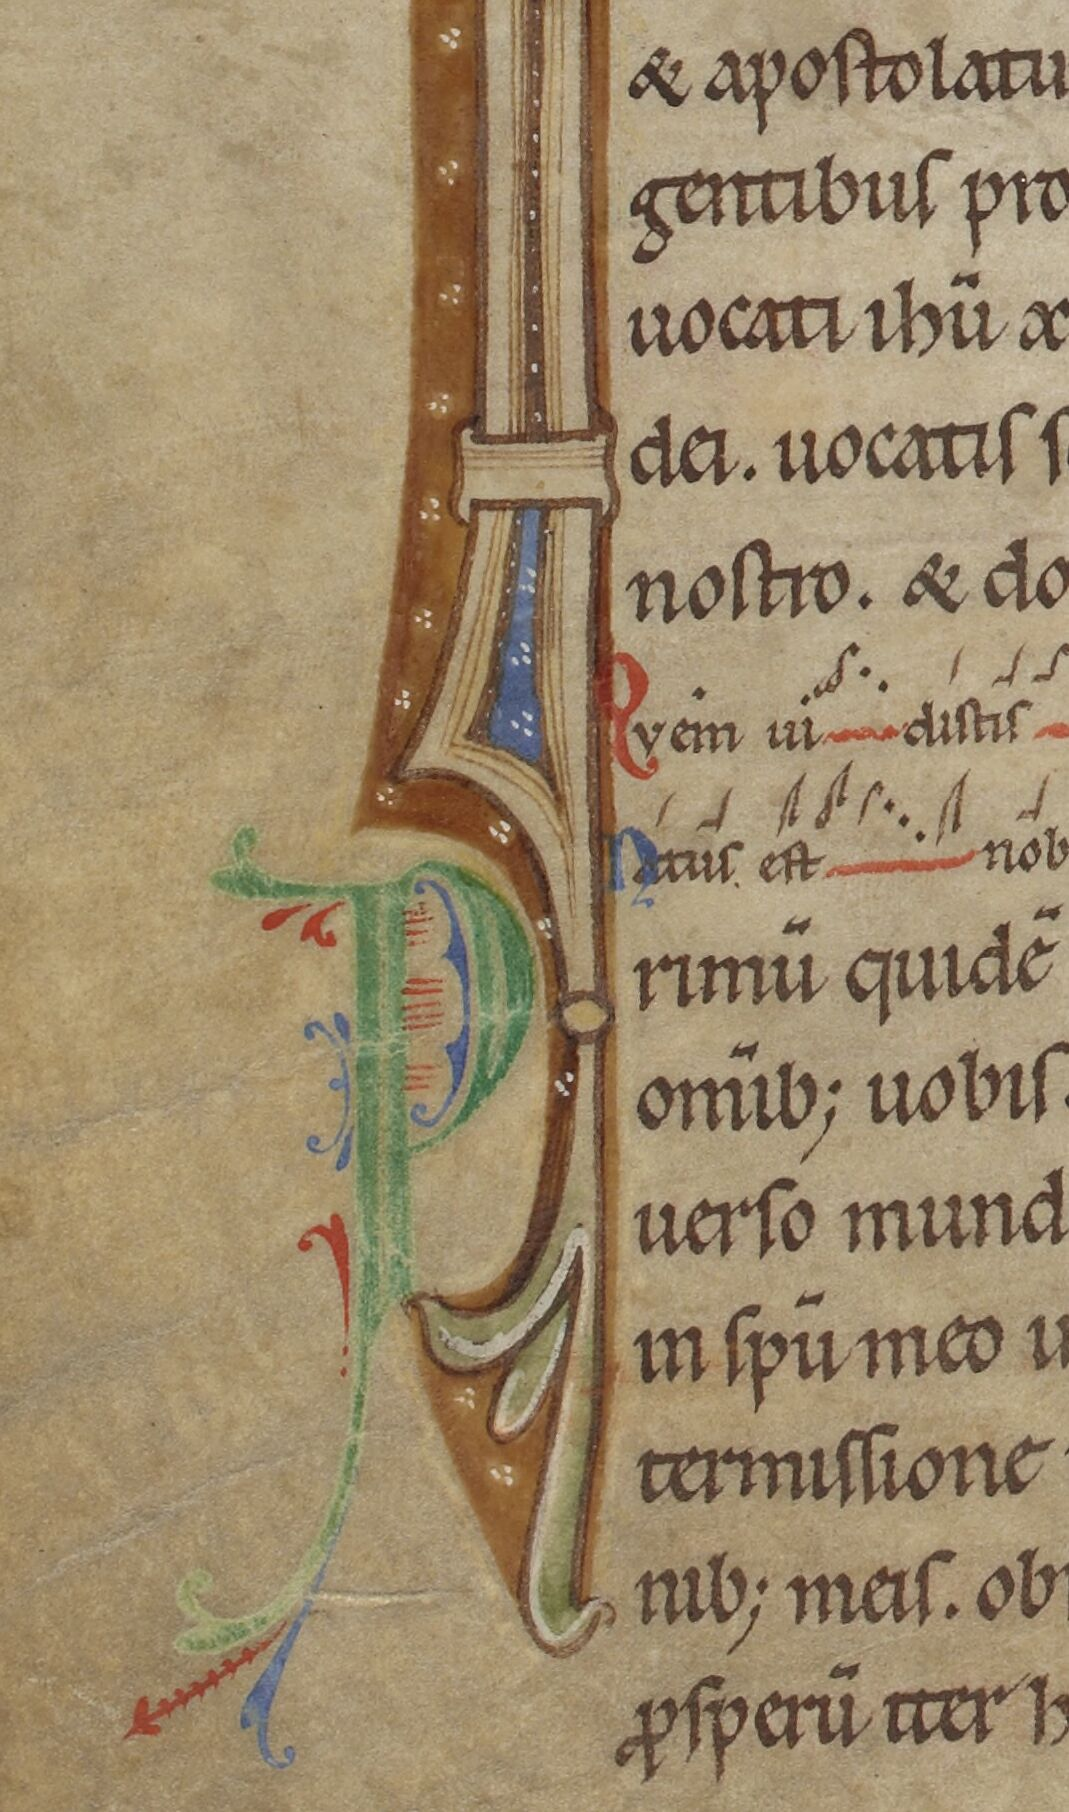 Inside the tail of one initial, another